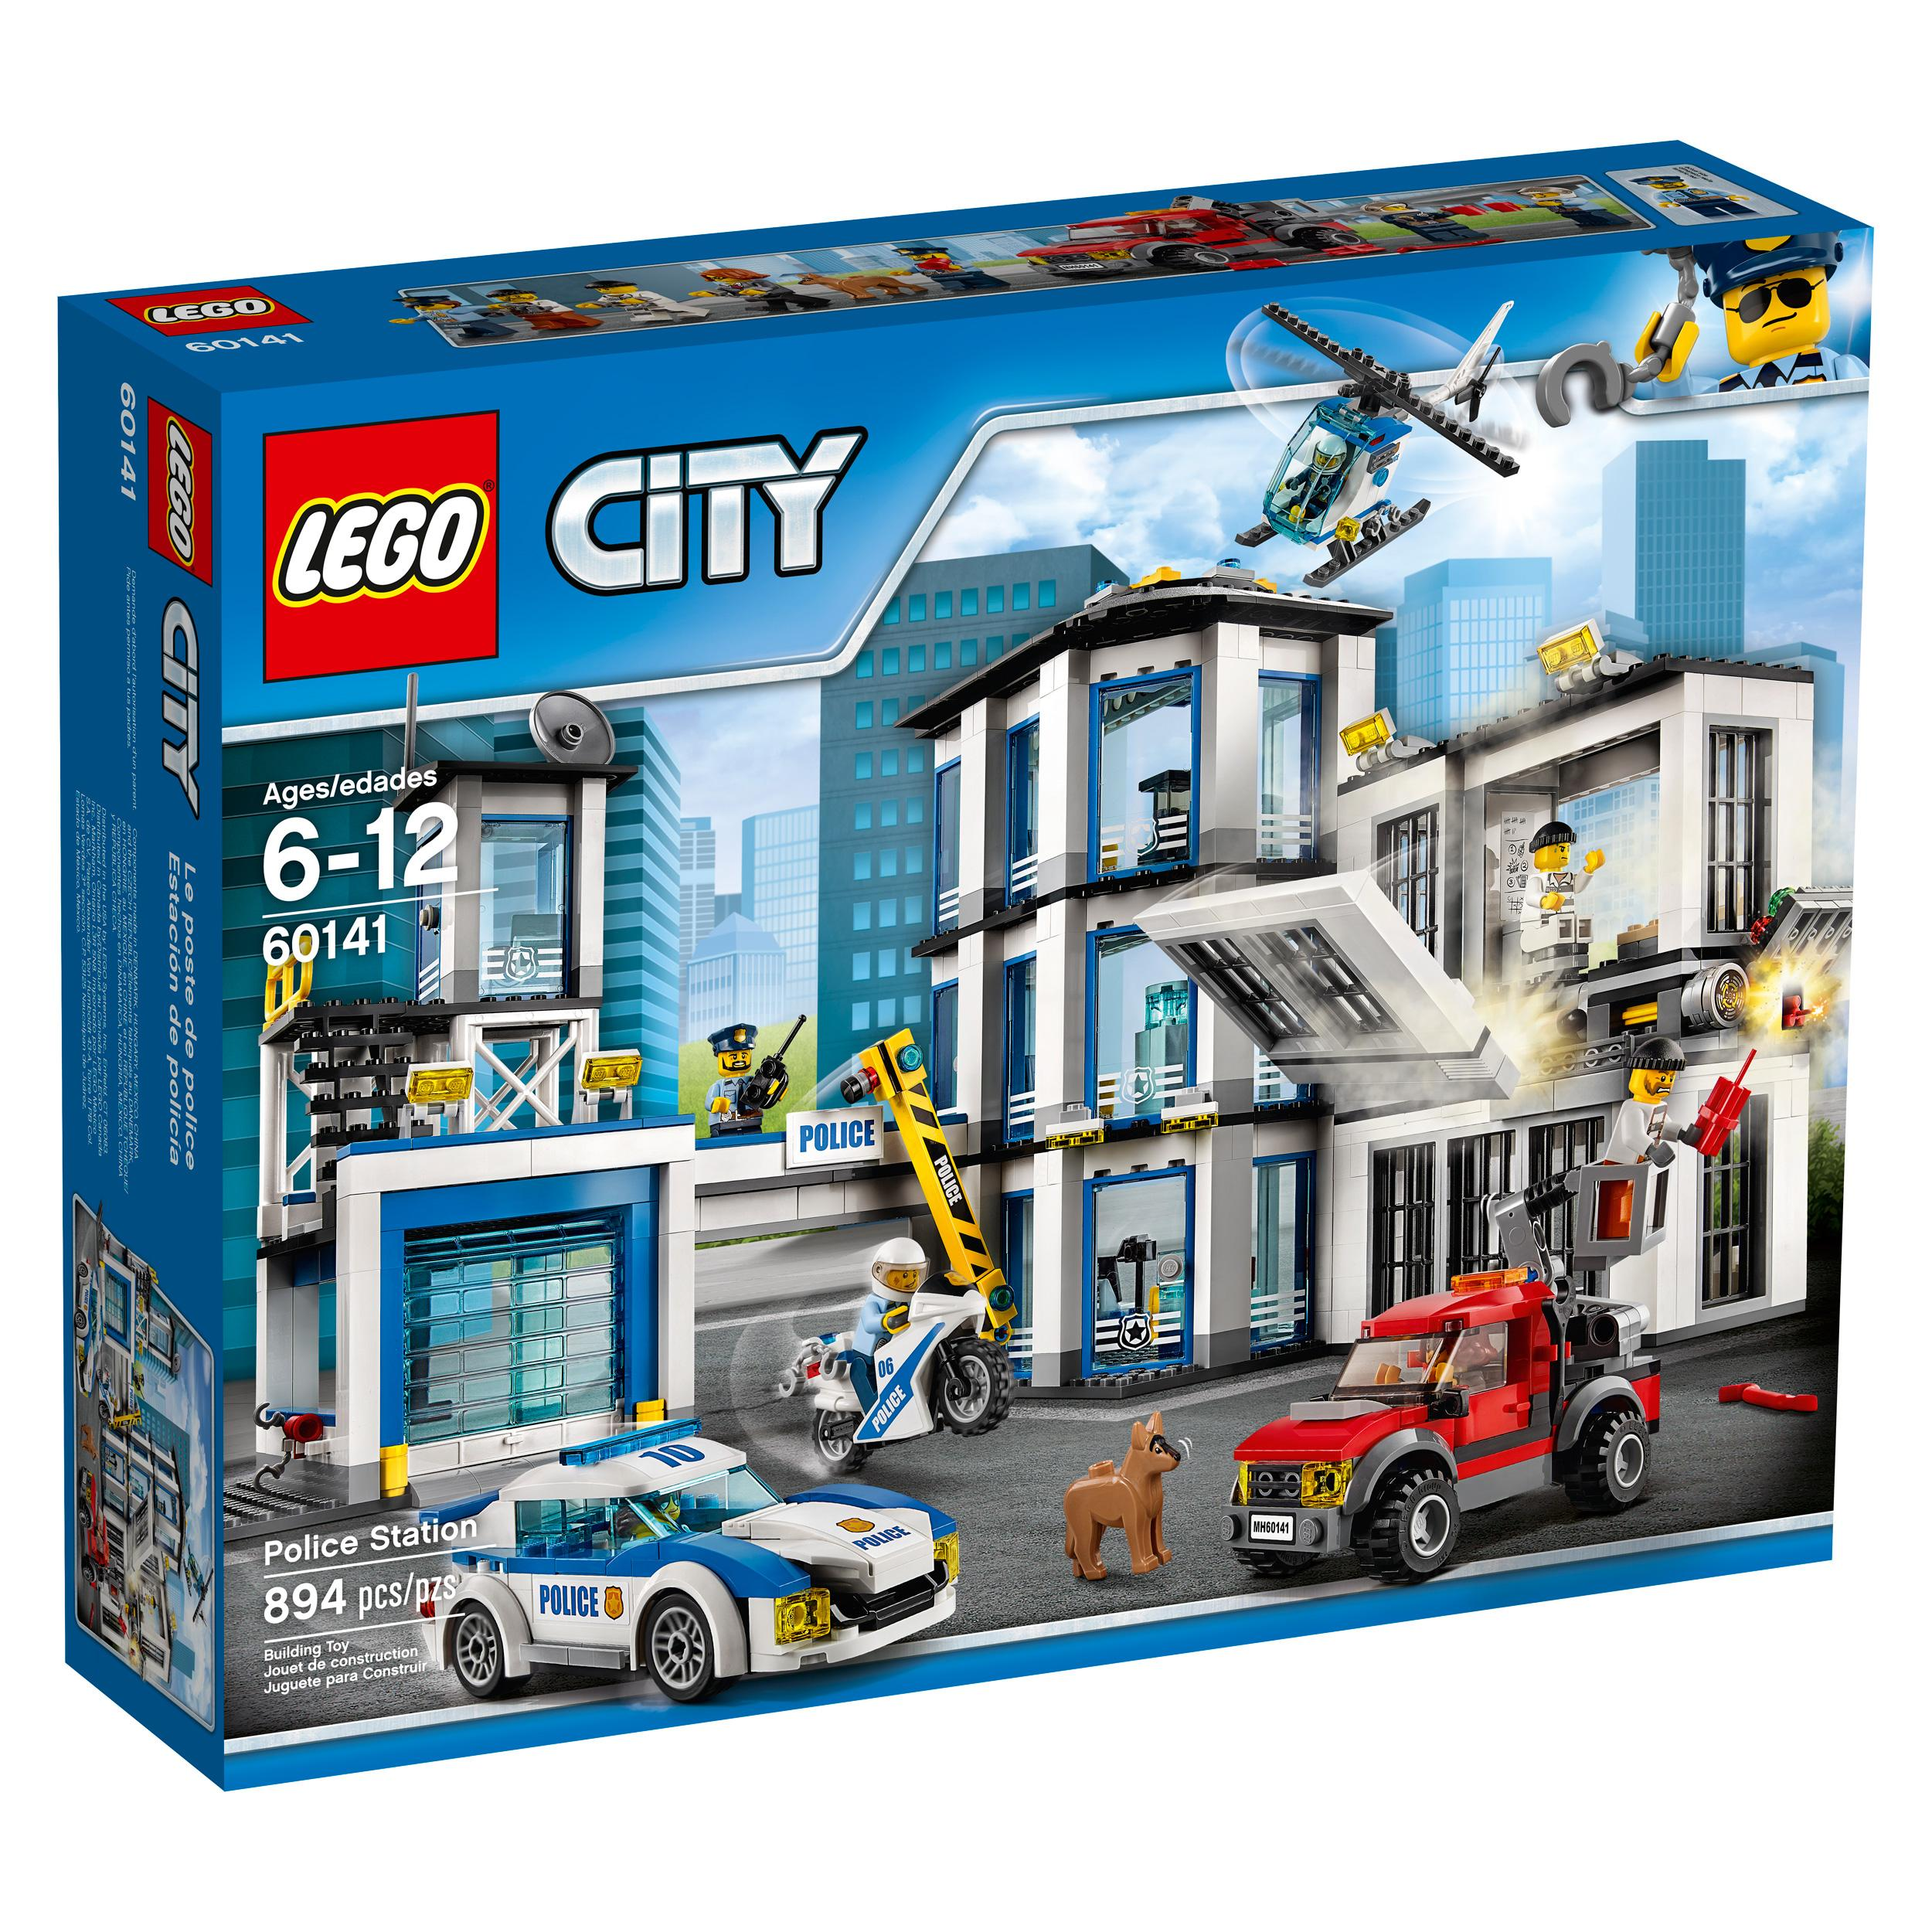 lego city police station 60141 cool toy for kids toys games. Black Bedroom Furniture Sets. Home Design Ideas